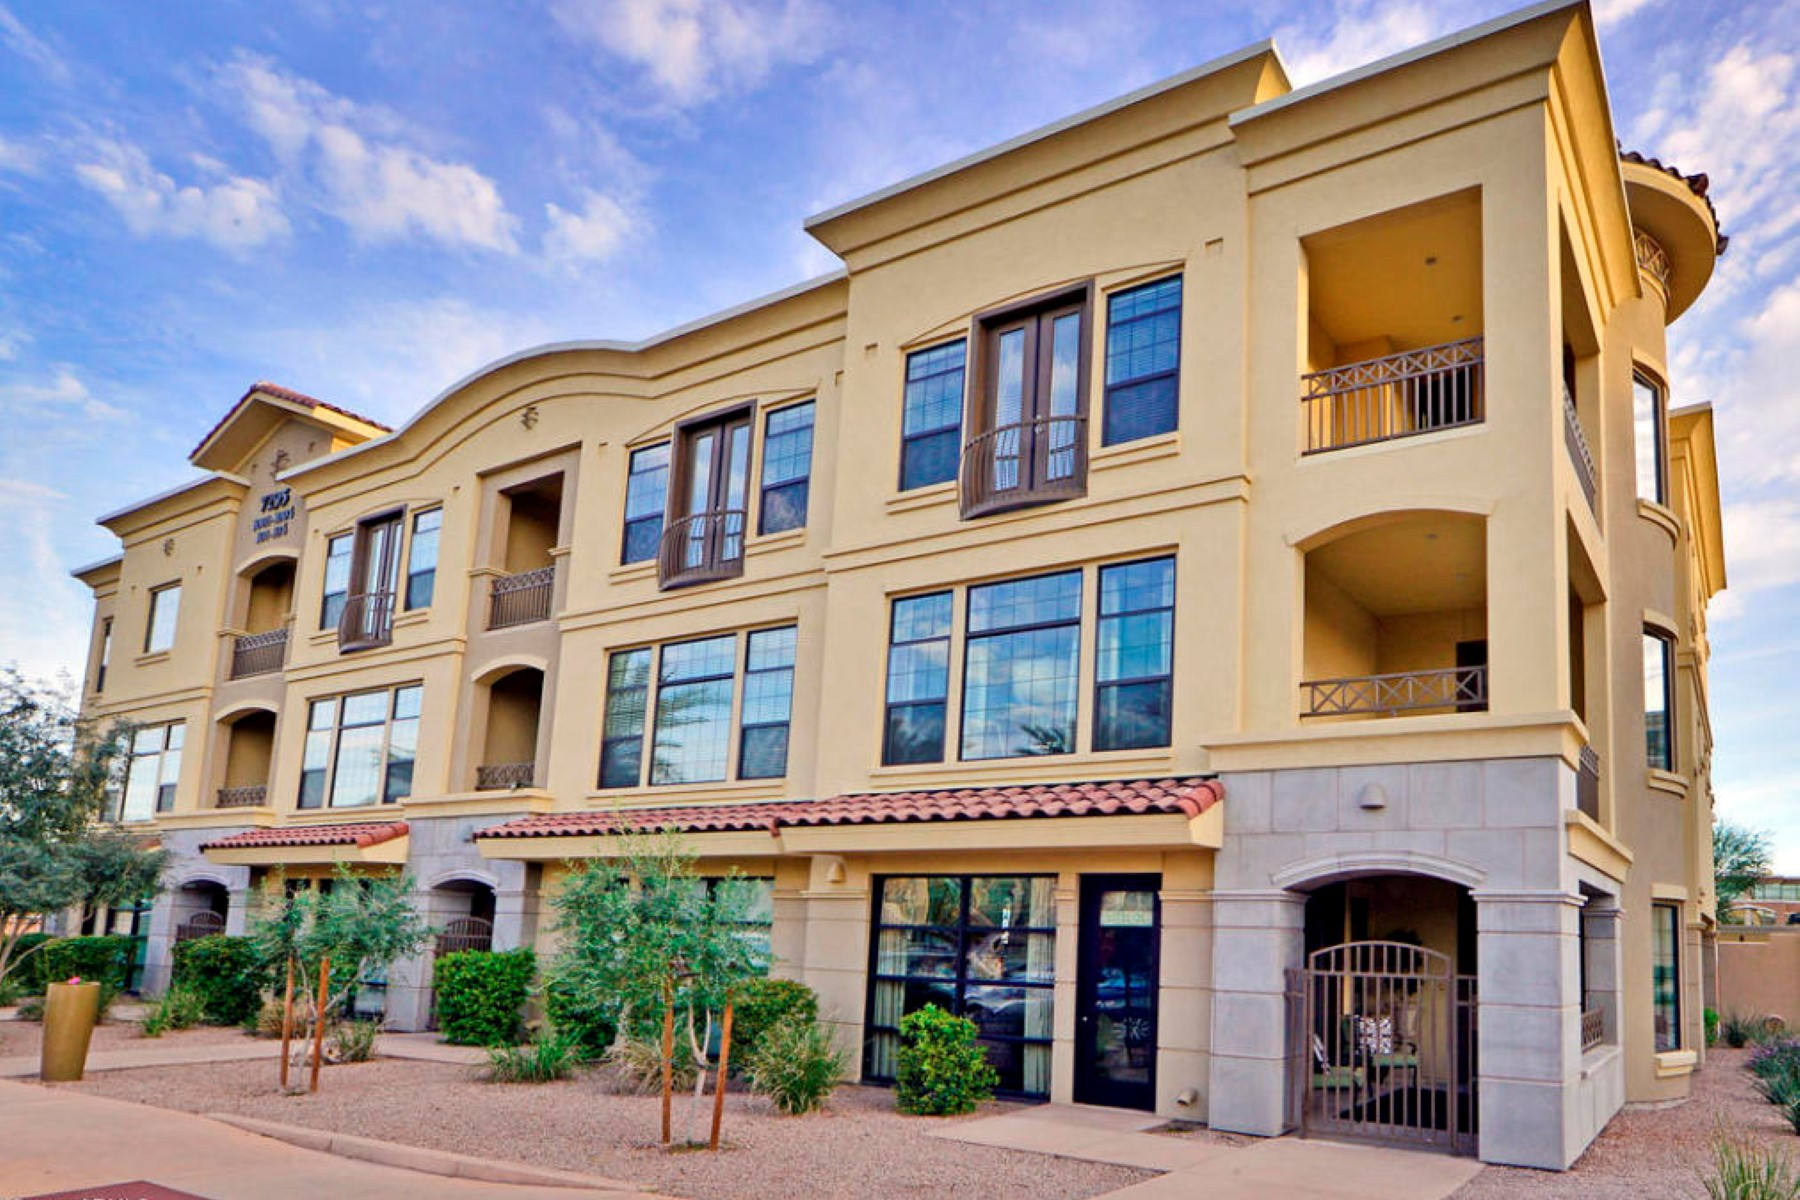 Property For Sale at Right in the heart of the Scottsdale Retail/Resort Corridor.